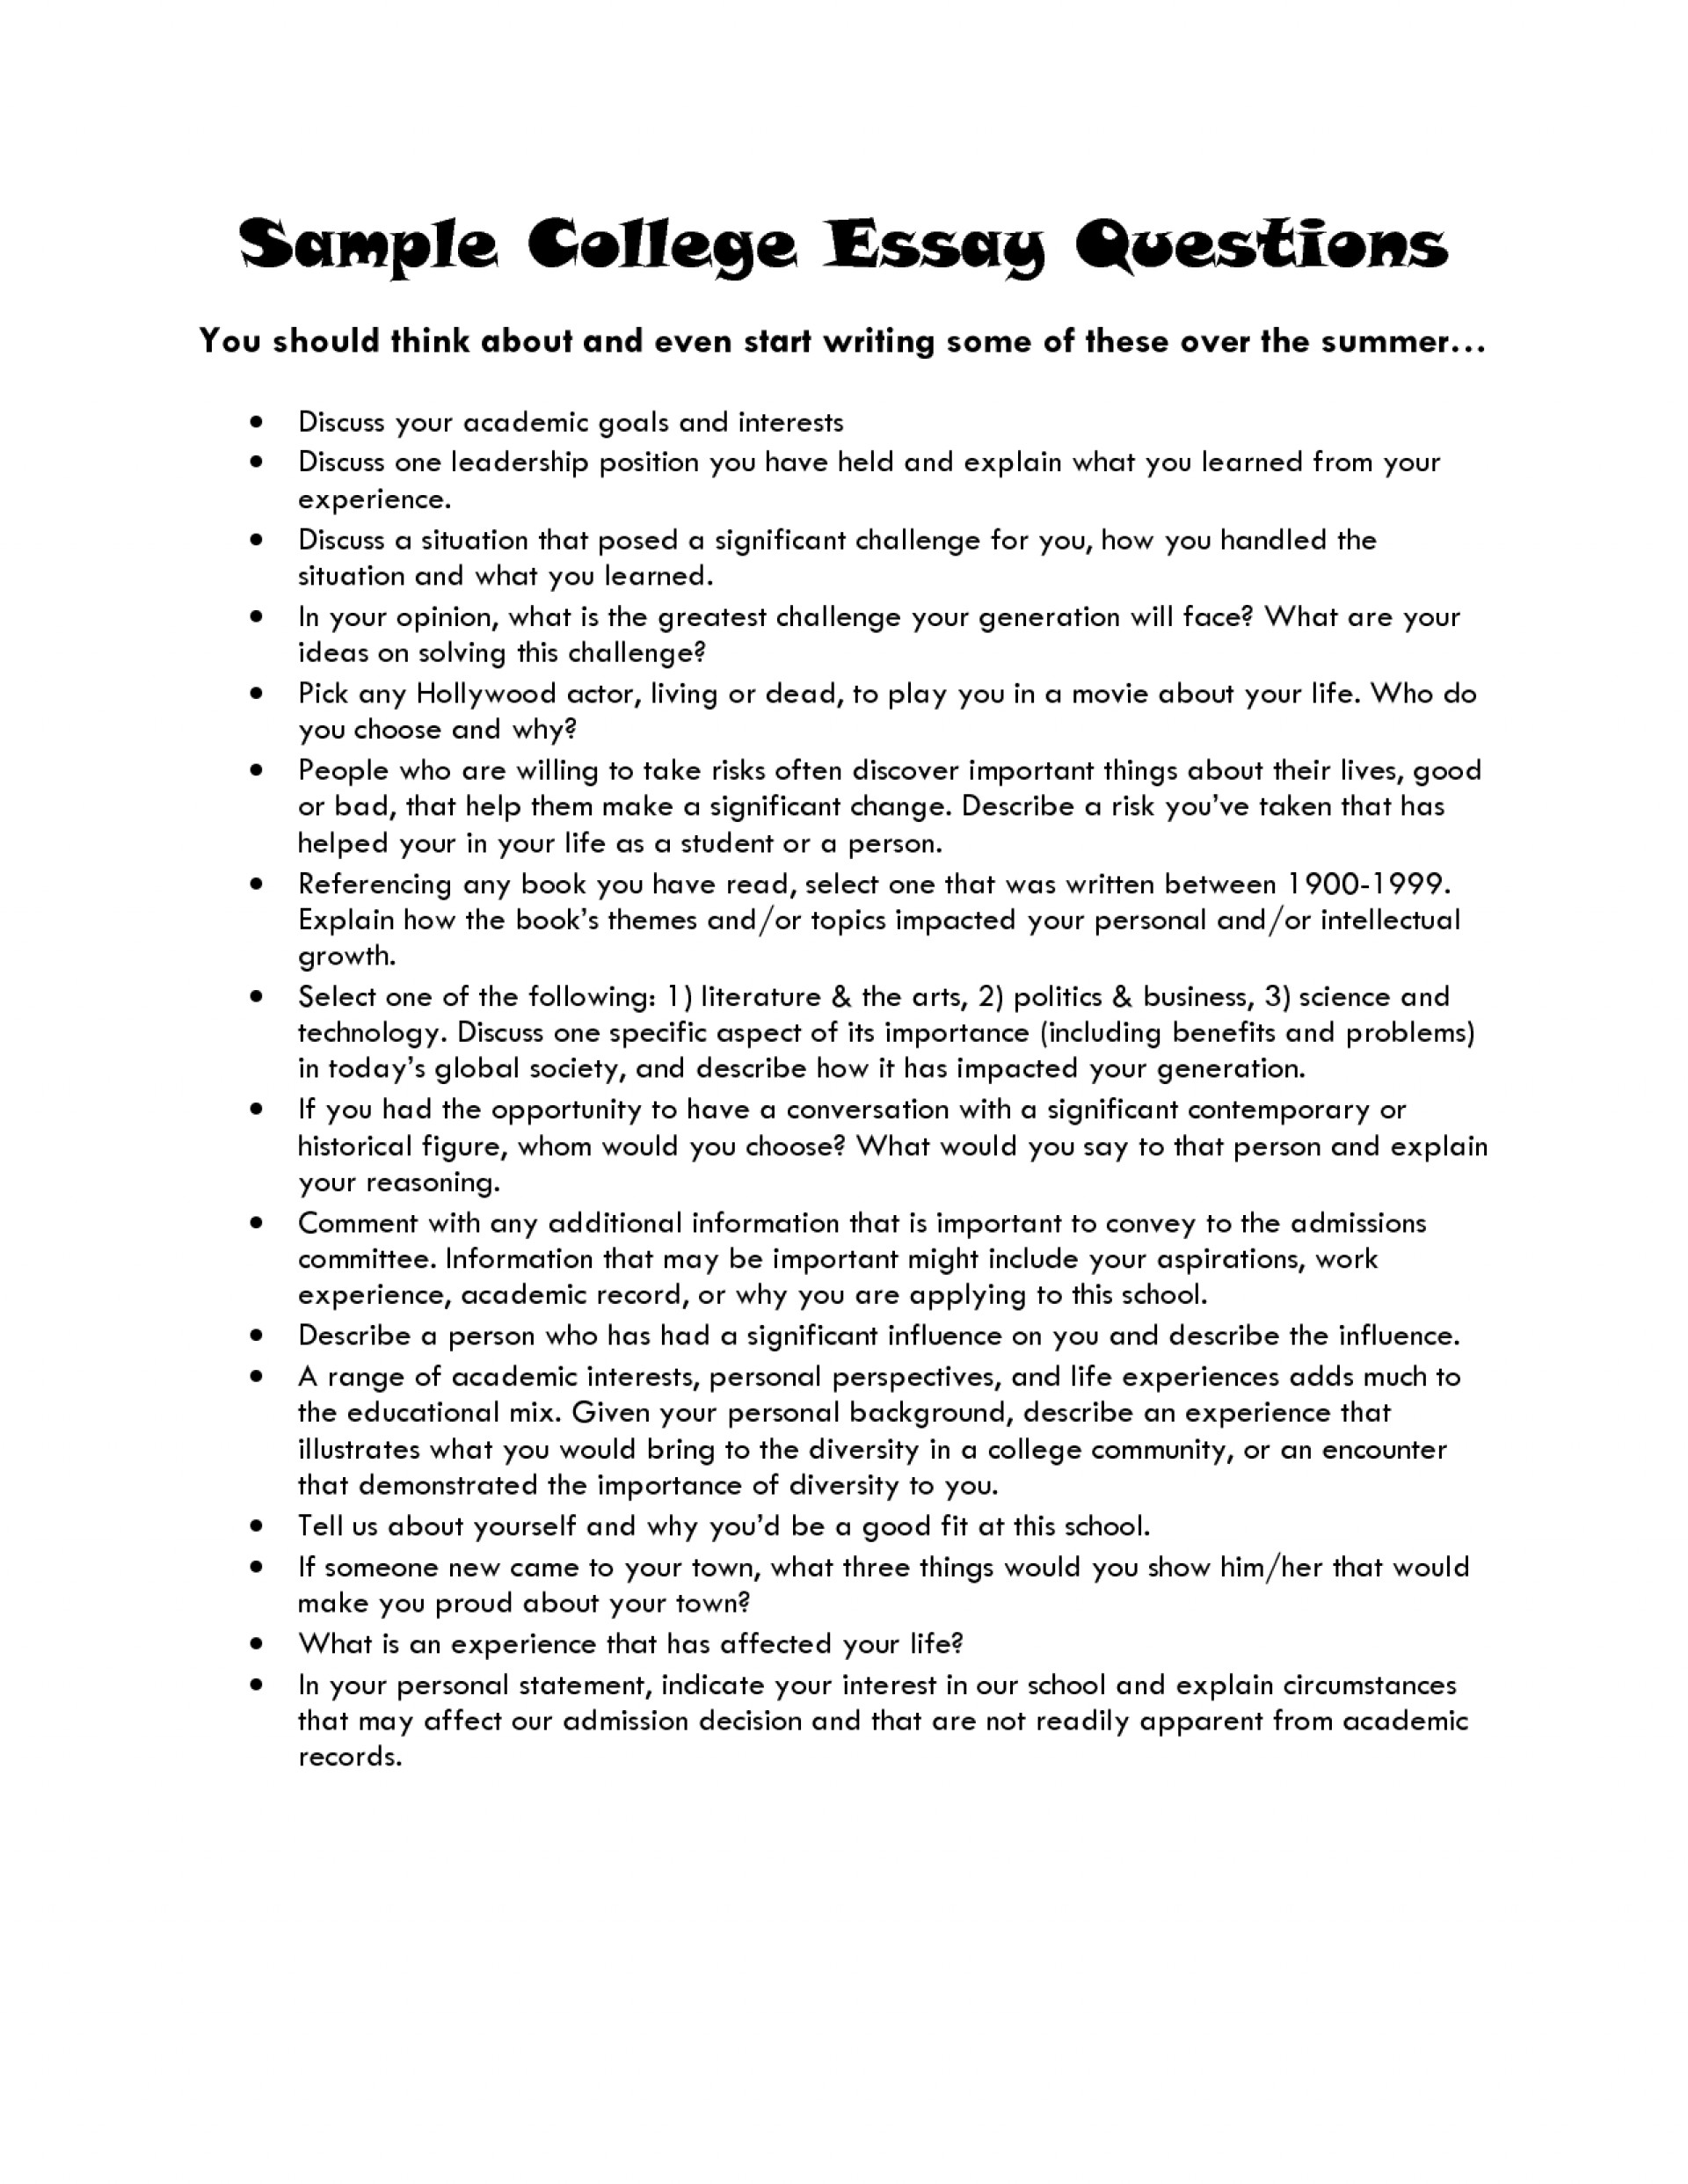 002 Academic Goals Essay Sample College Questions L Frightening Crazy Application Harvard Prompts 2017 Mit Prompt 1920